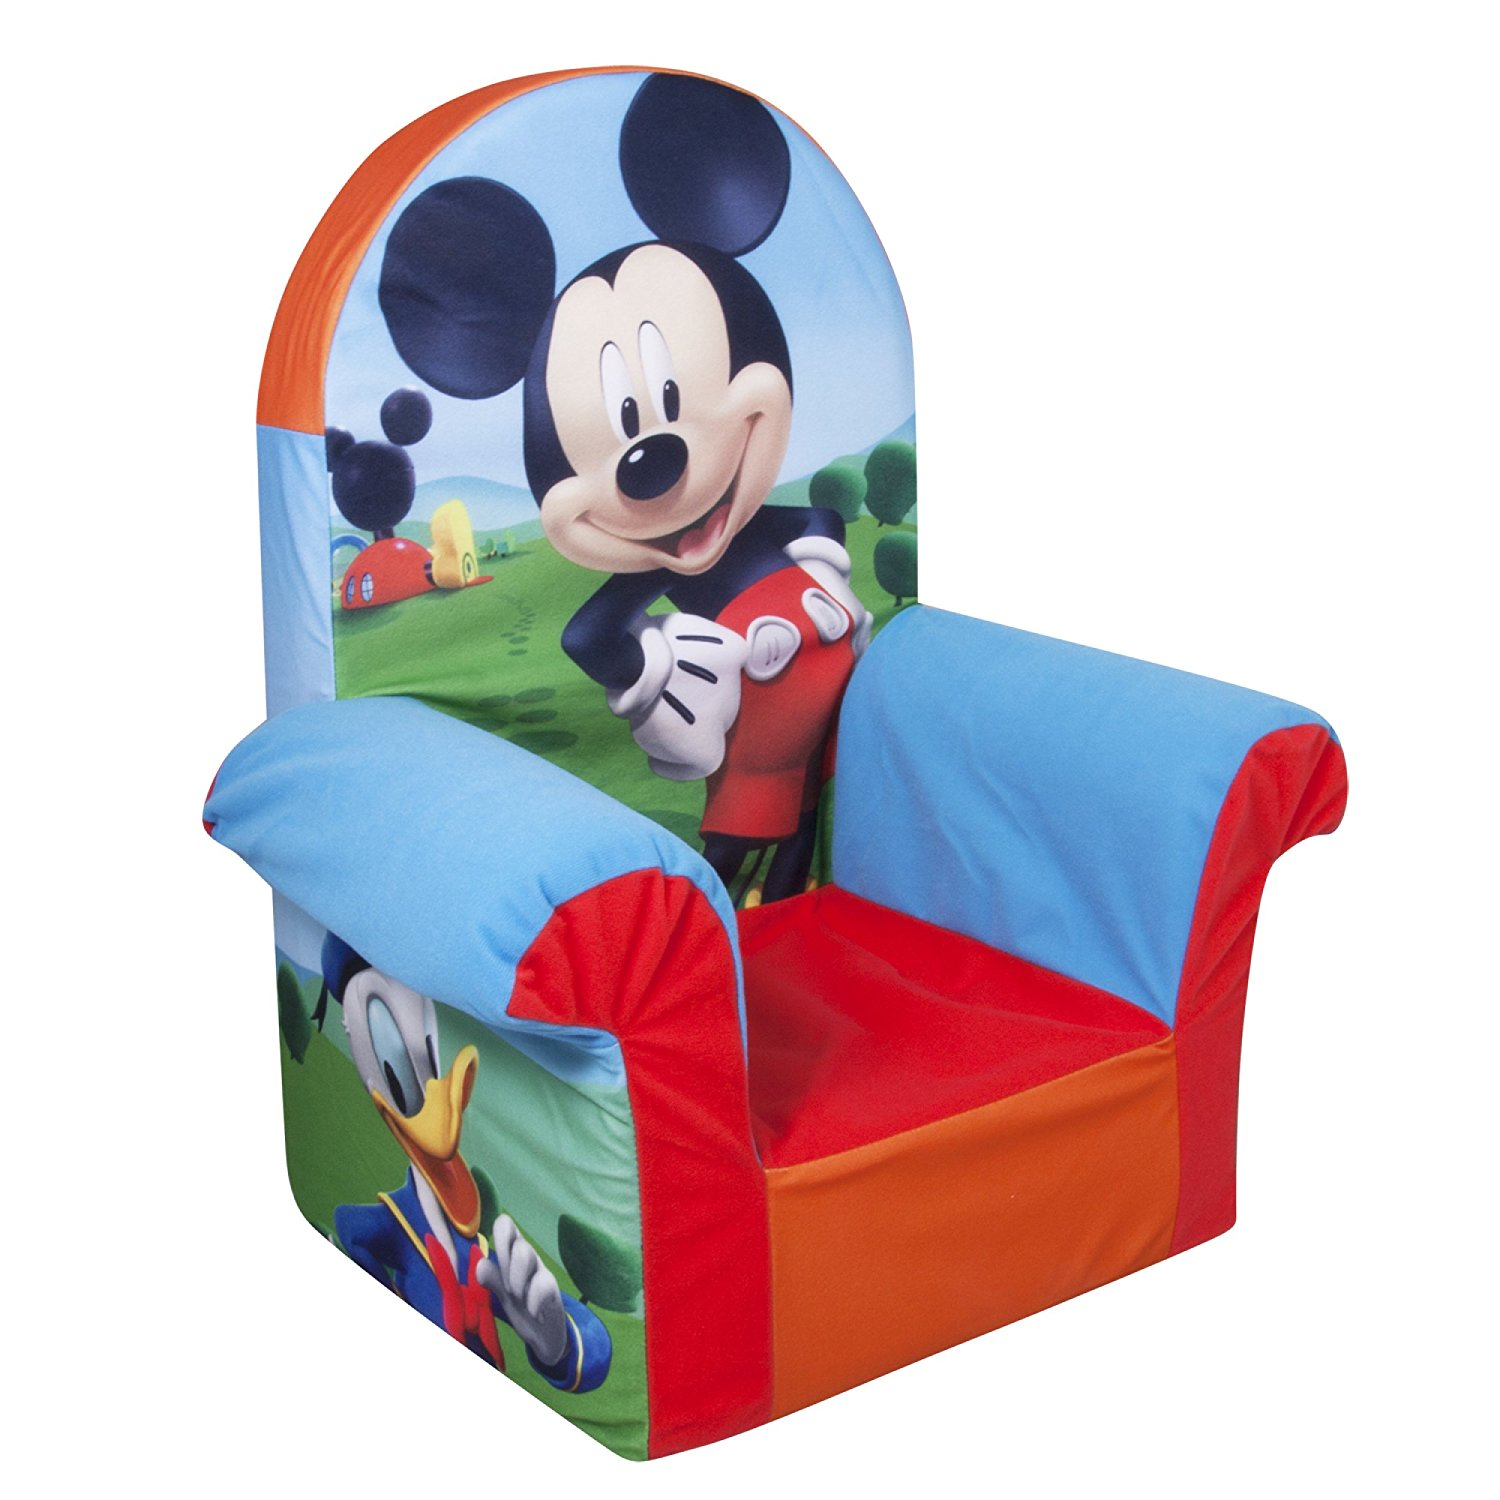 Toddler Foam Chair Marshmallow Furniture Childrens Foam High Back Chair